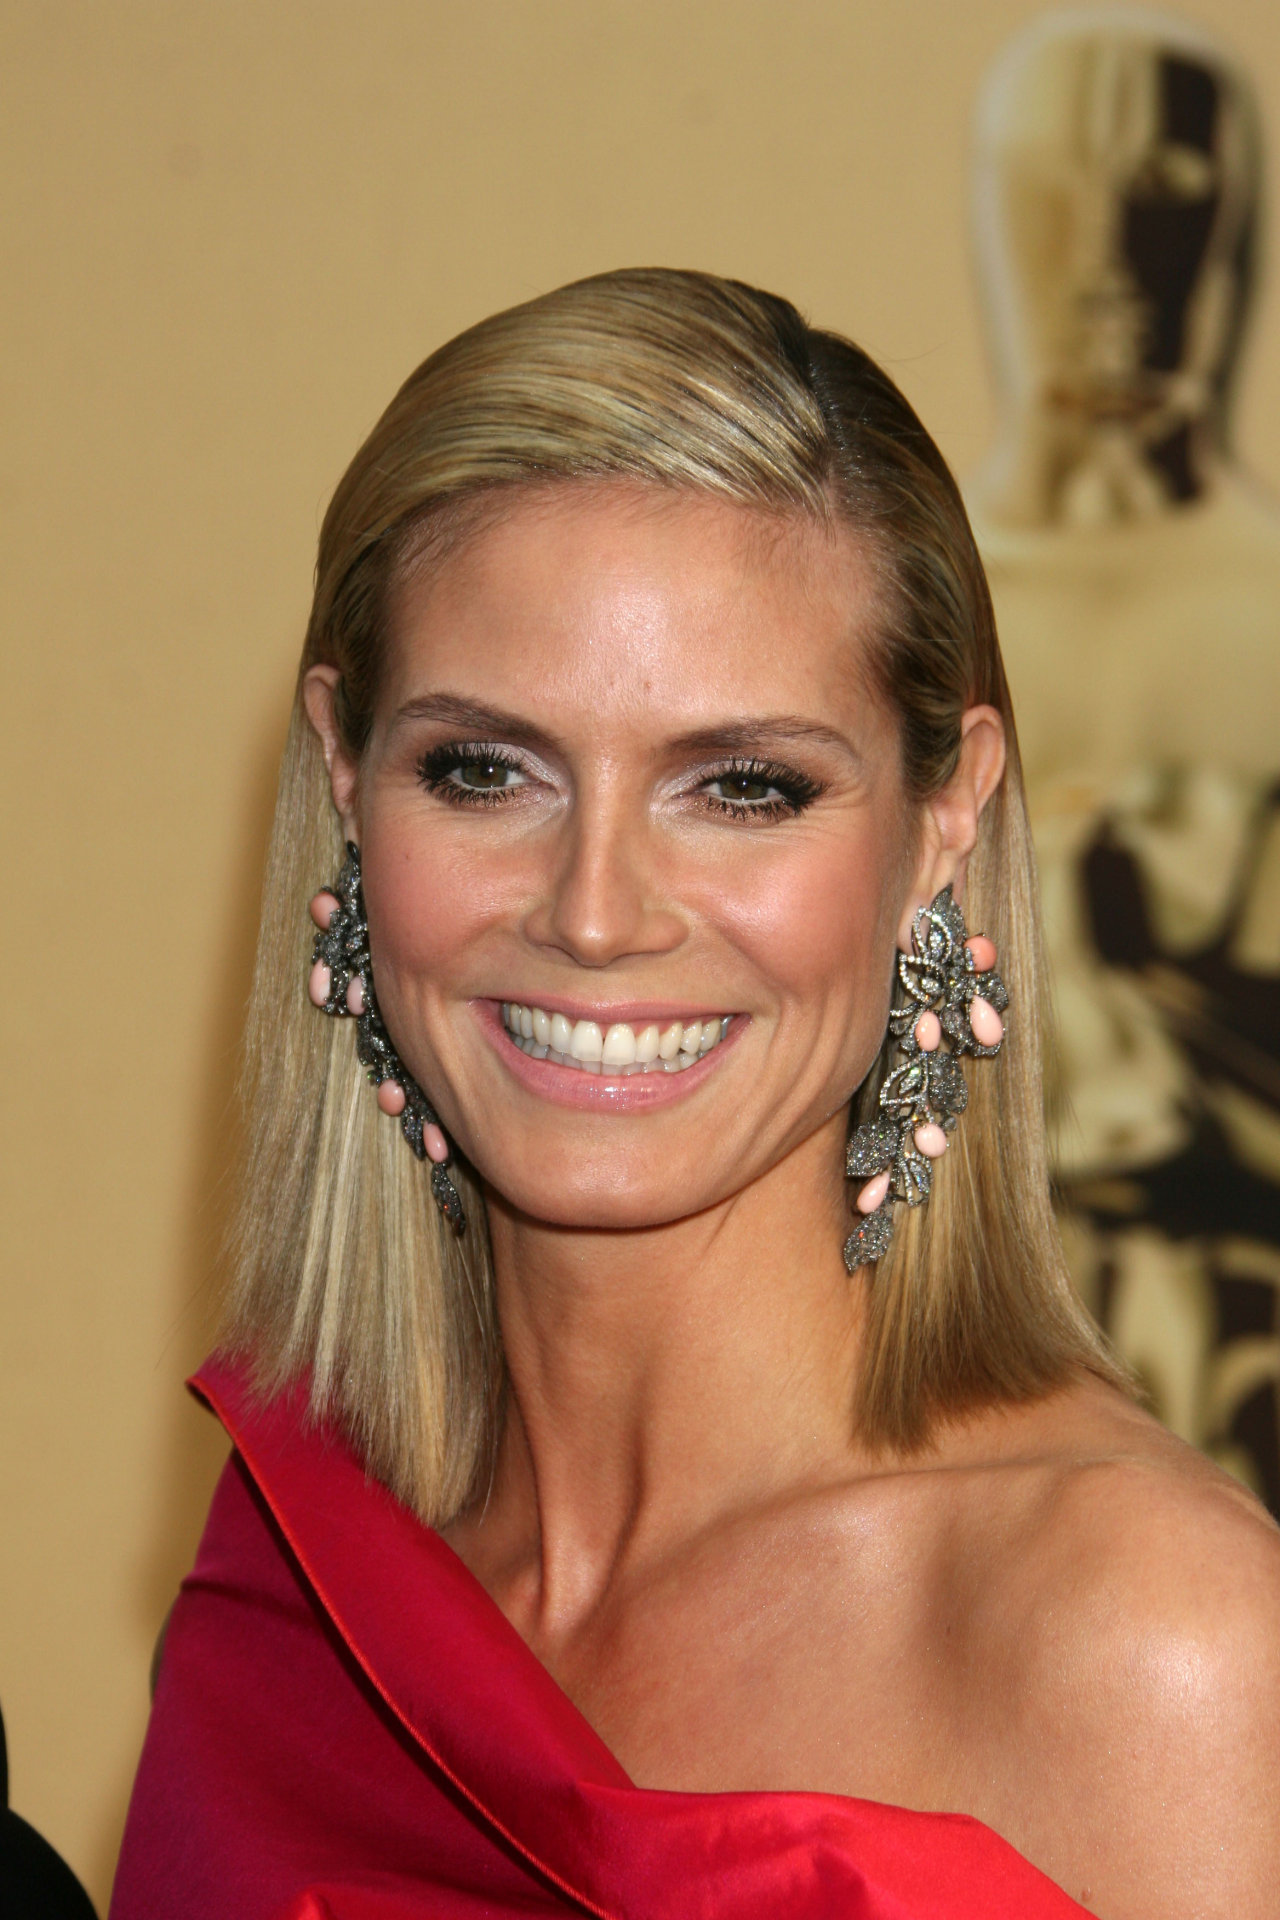 Heidi Klum leaked wallpapers